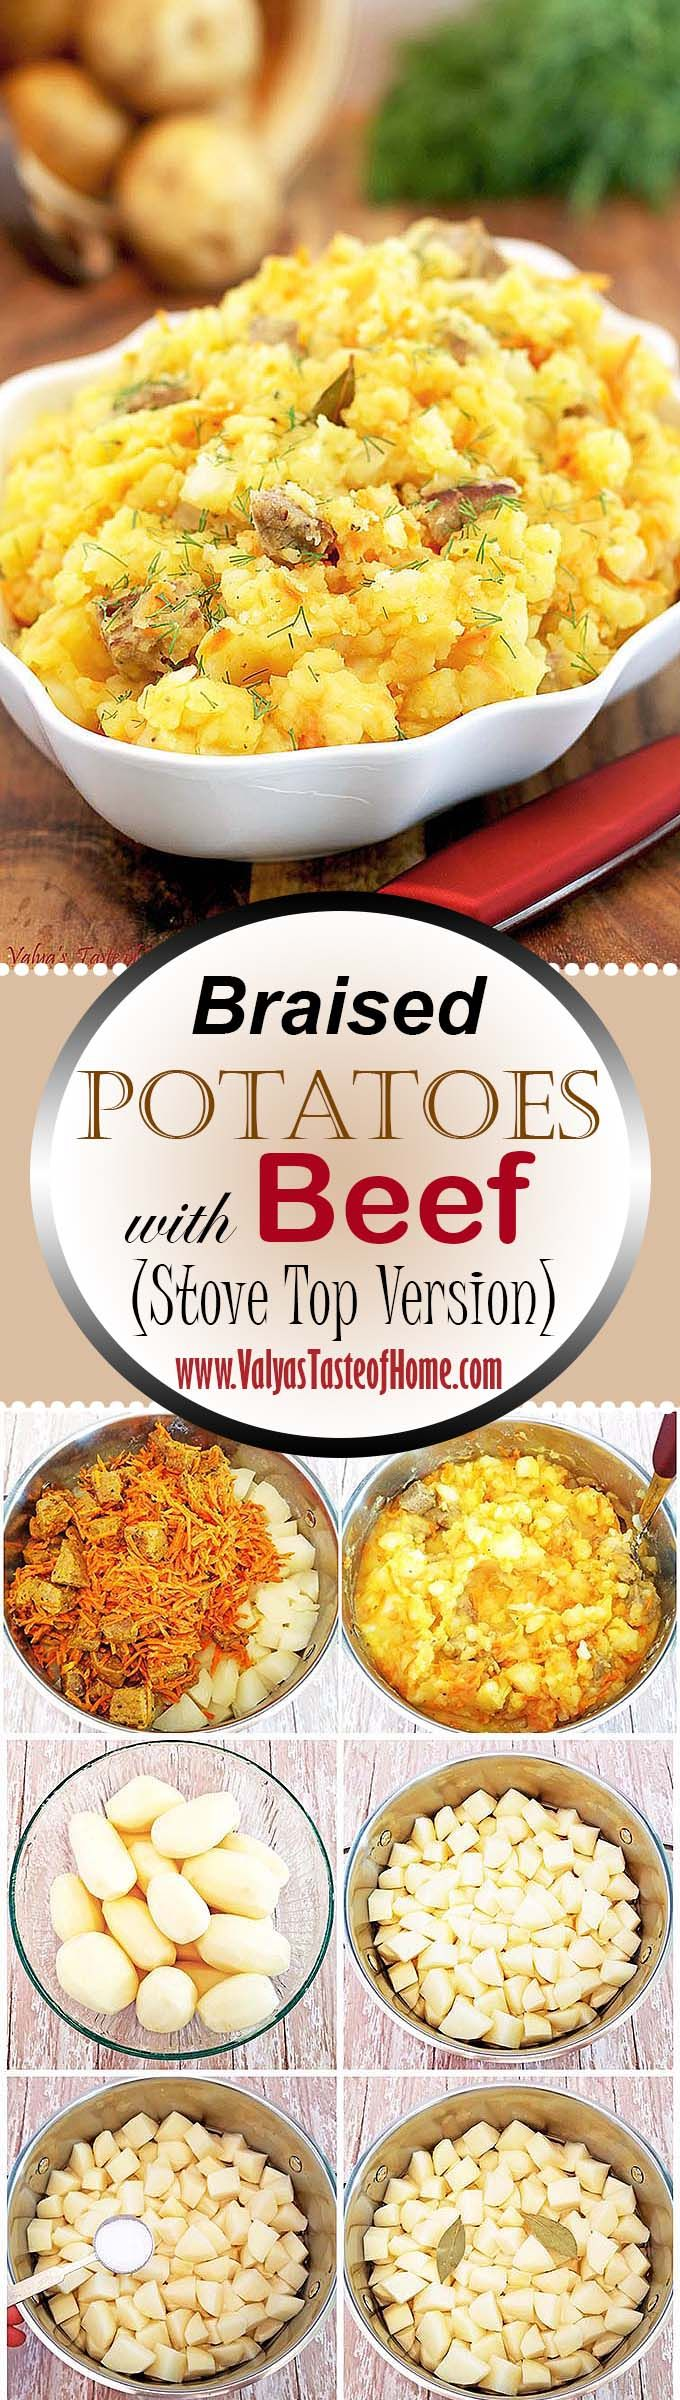 This Braised Potatoes with Beef (Stove Top Version) dish is full of flavor. Carrots give a tasty sweet rich taste and color. The beef is tender and juicy, adding protein to the meal without extra work in preparing a separate meat dish. How awesome is that? I absolutely love dishes like this one and I know you will too! So GOOD!   www.valyastasteofhome.com